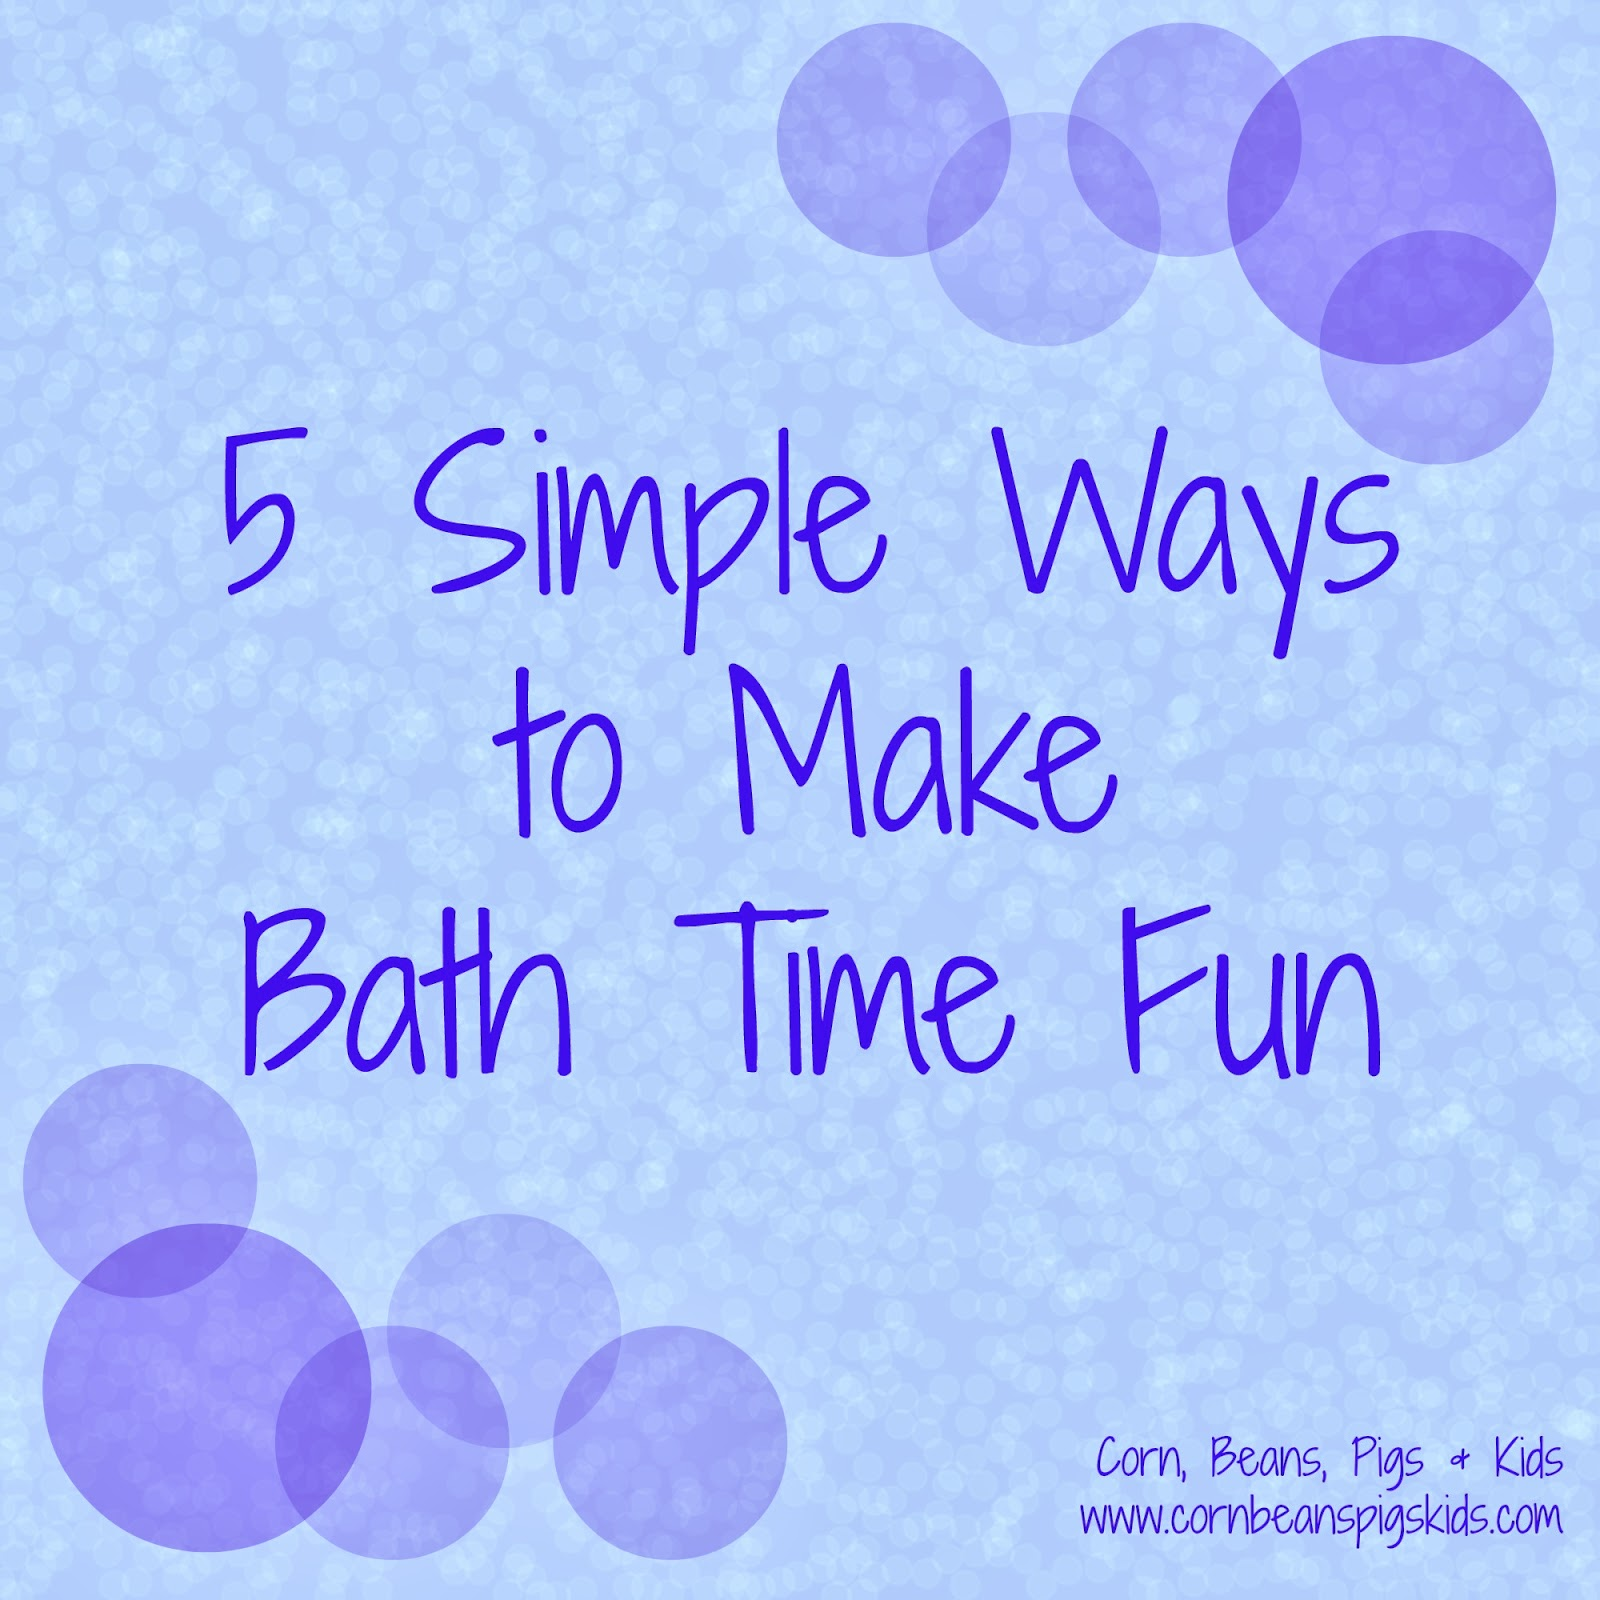 5 Simple Ways to Make Bath Time Fun